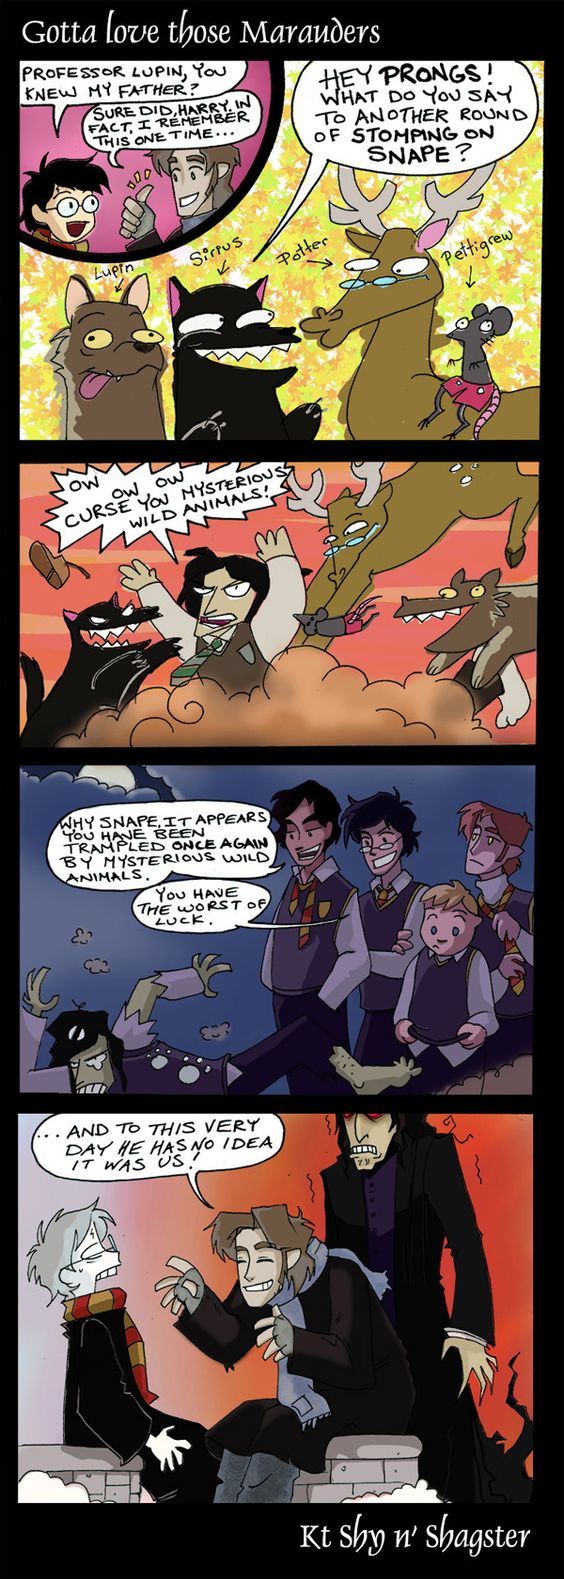 Lupin wouldn't be this happy about the incident, but still funny!